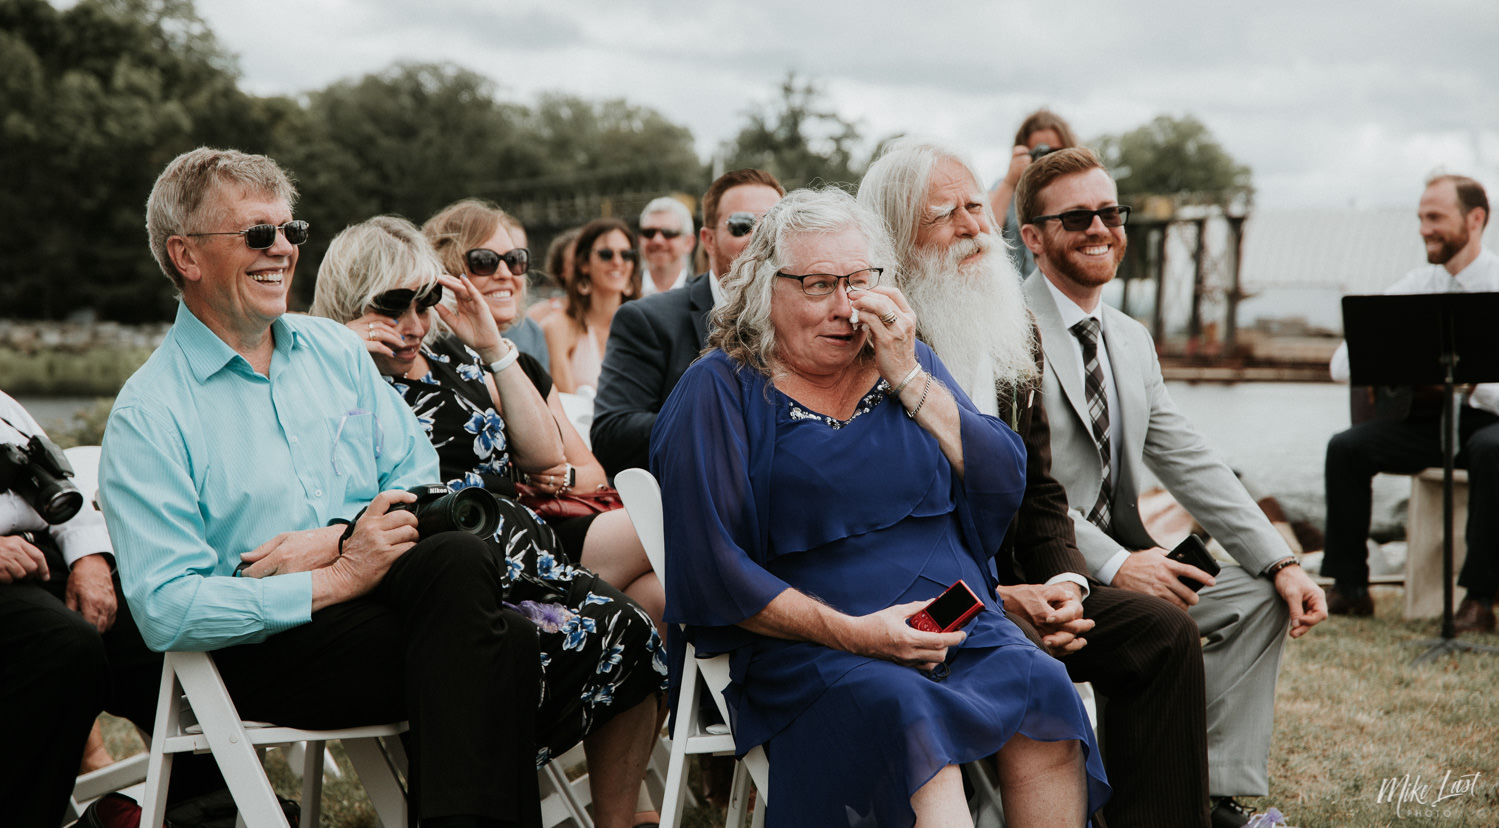 Mother of the groom drying tears of laughter at wedding.